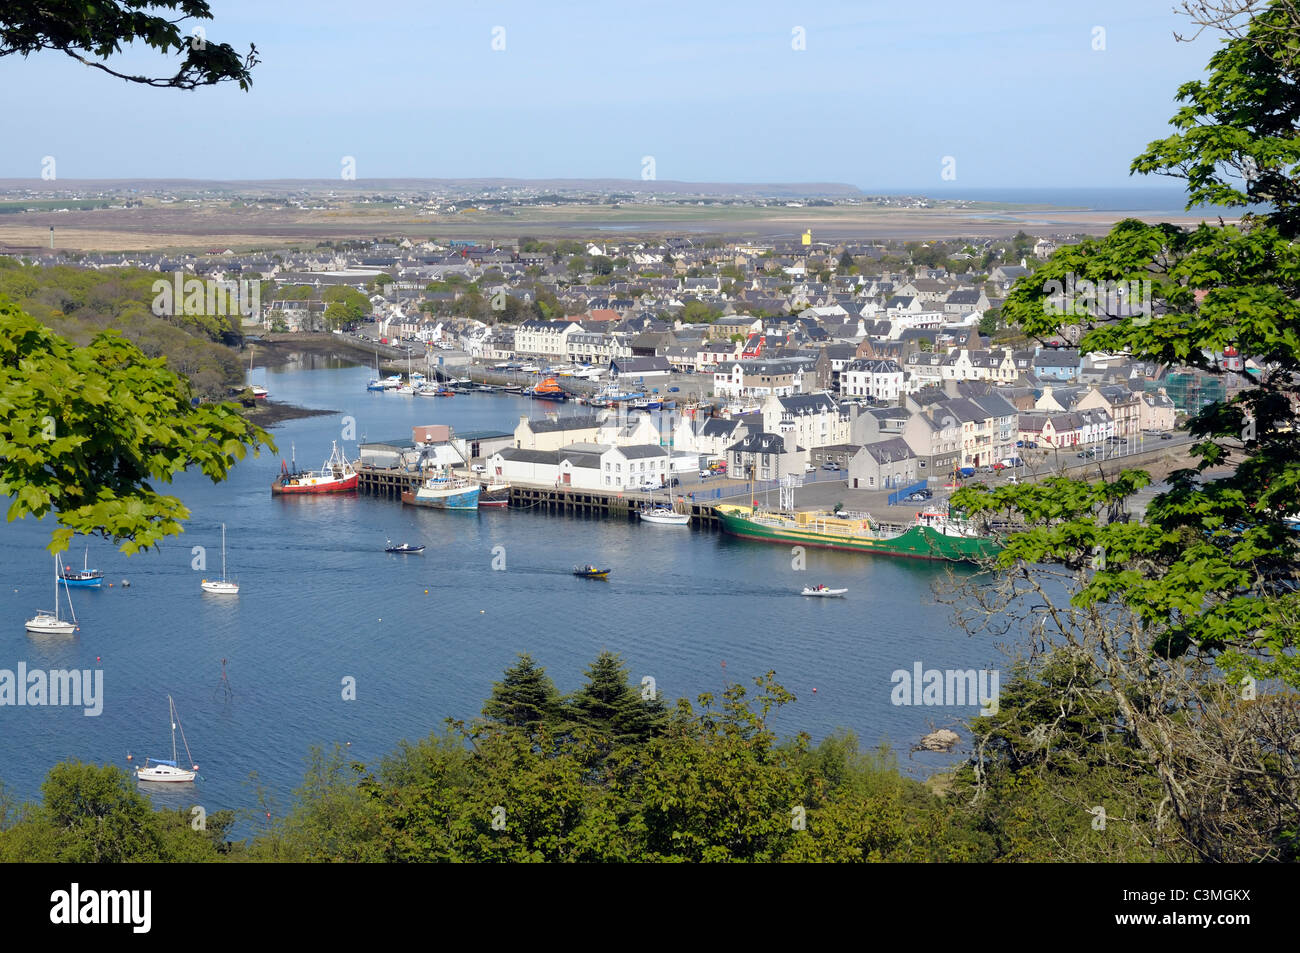 The town and harbour at Stornoway on the Isle of Lewis - Stock Image